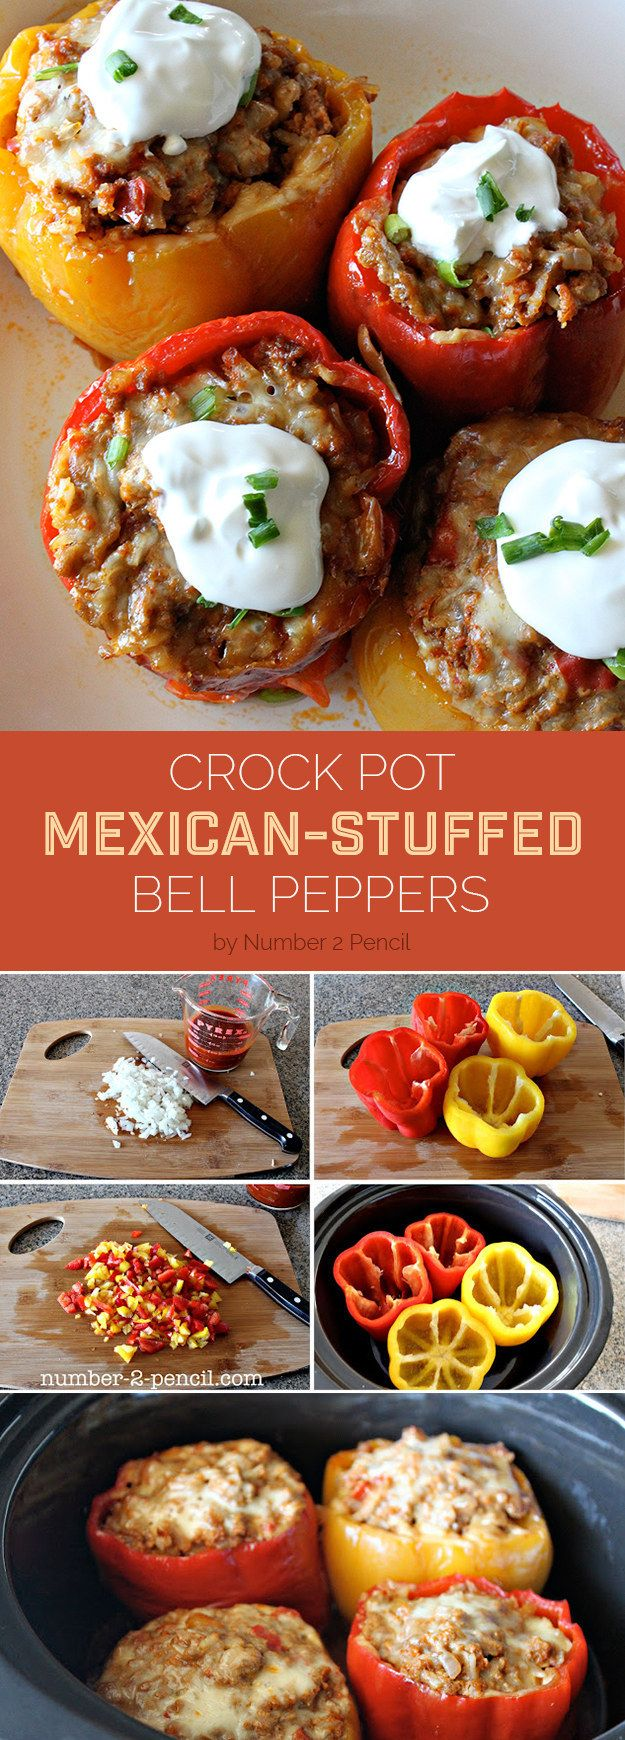 Crock Pot Mexican-Stuffed Bell Peppers | Here Are 7 Weeknight Dump Dinners You Can Make In Your Slow Cooker